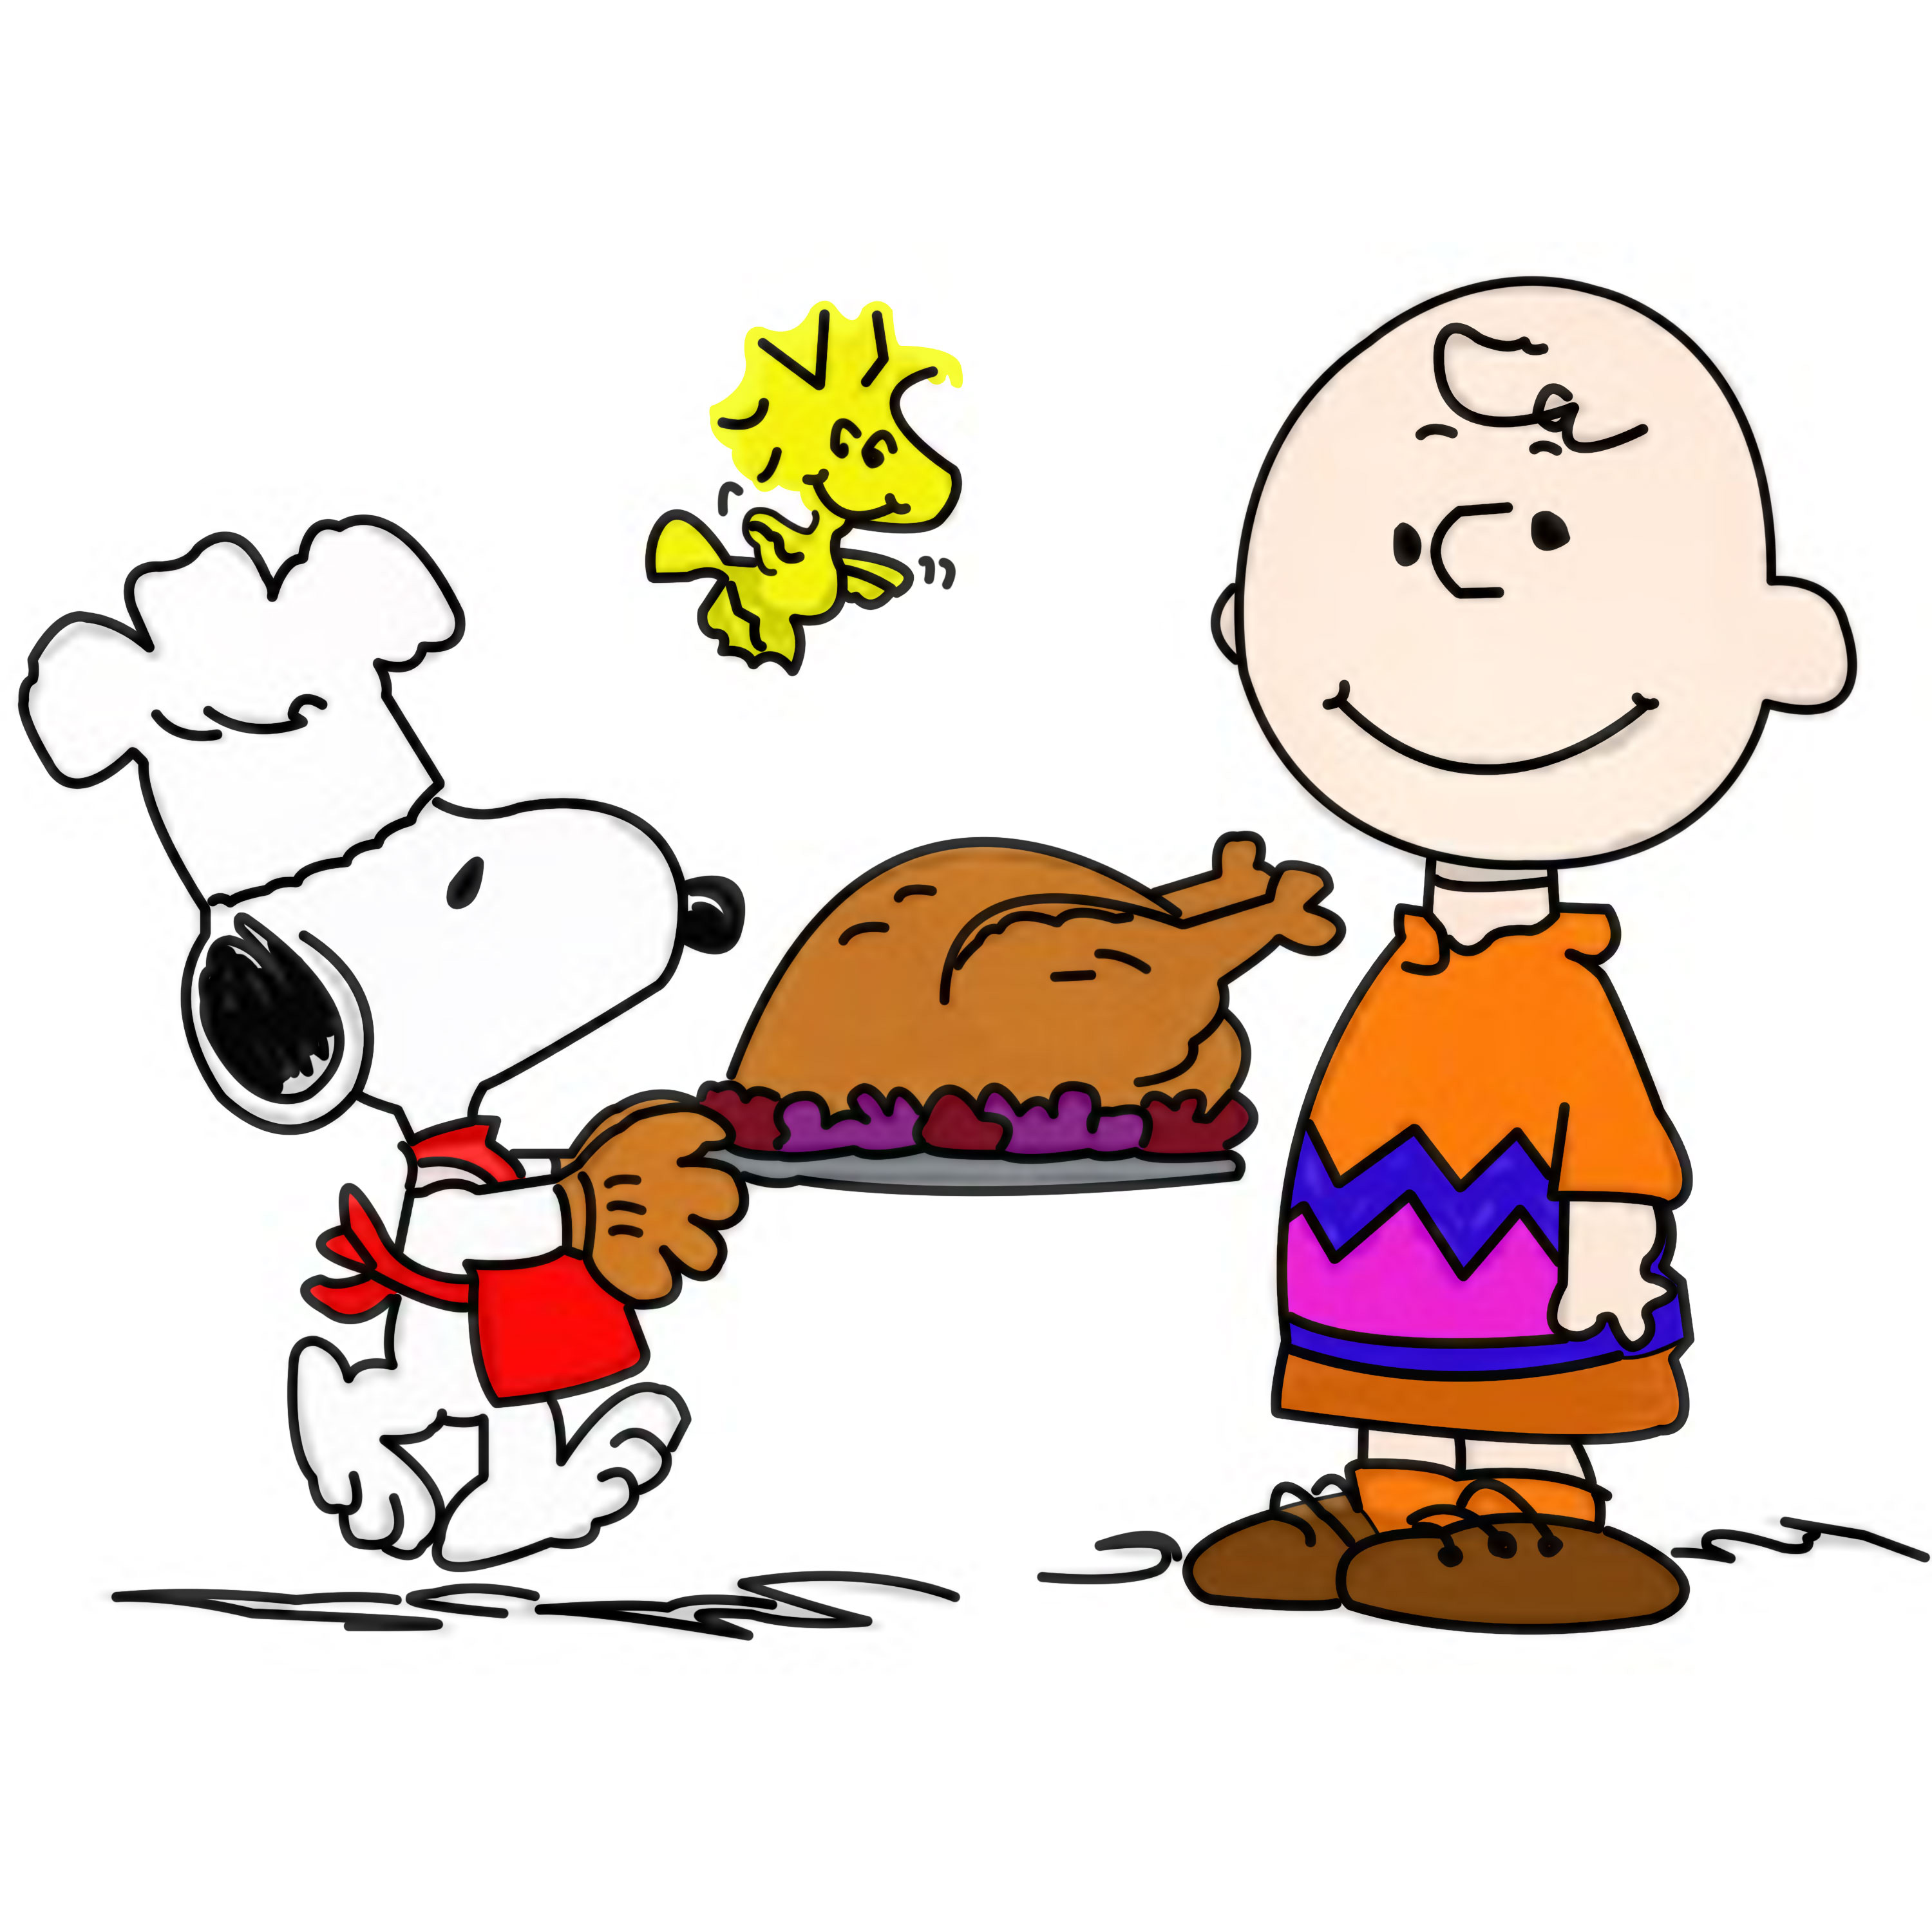 3000x3000 Collection Of Peanuts Thanksgiving Clipart High Quality